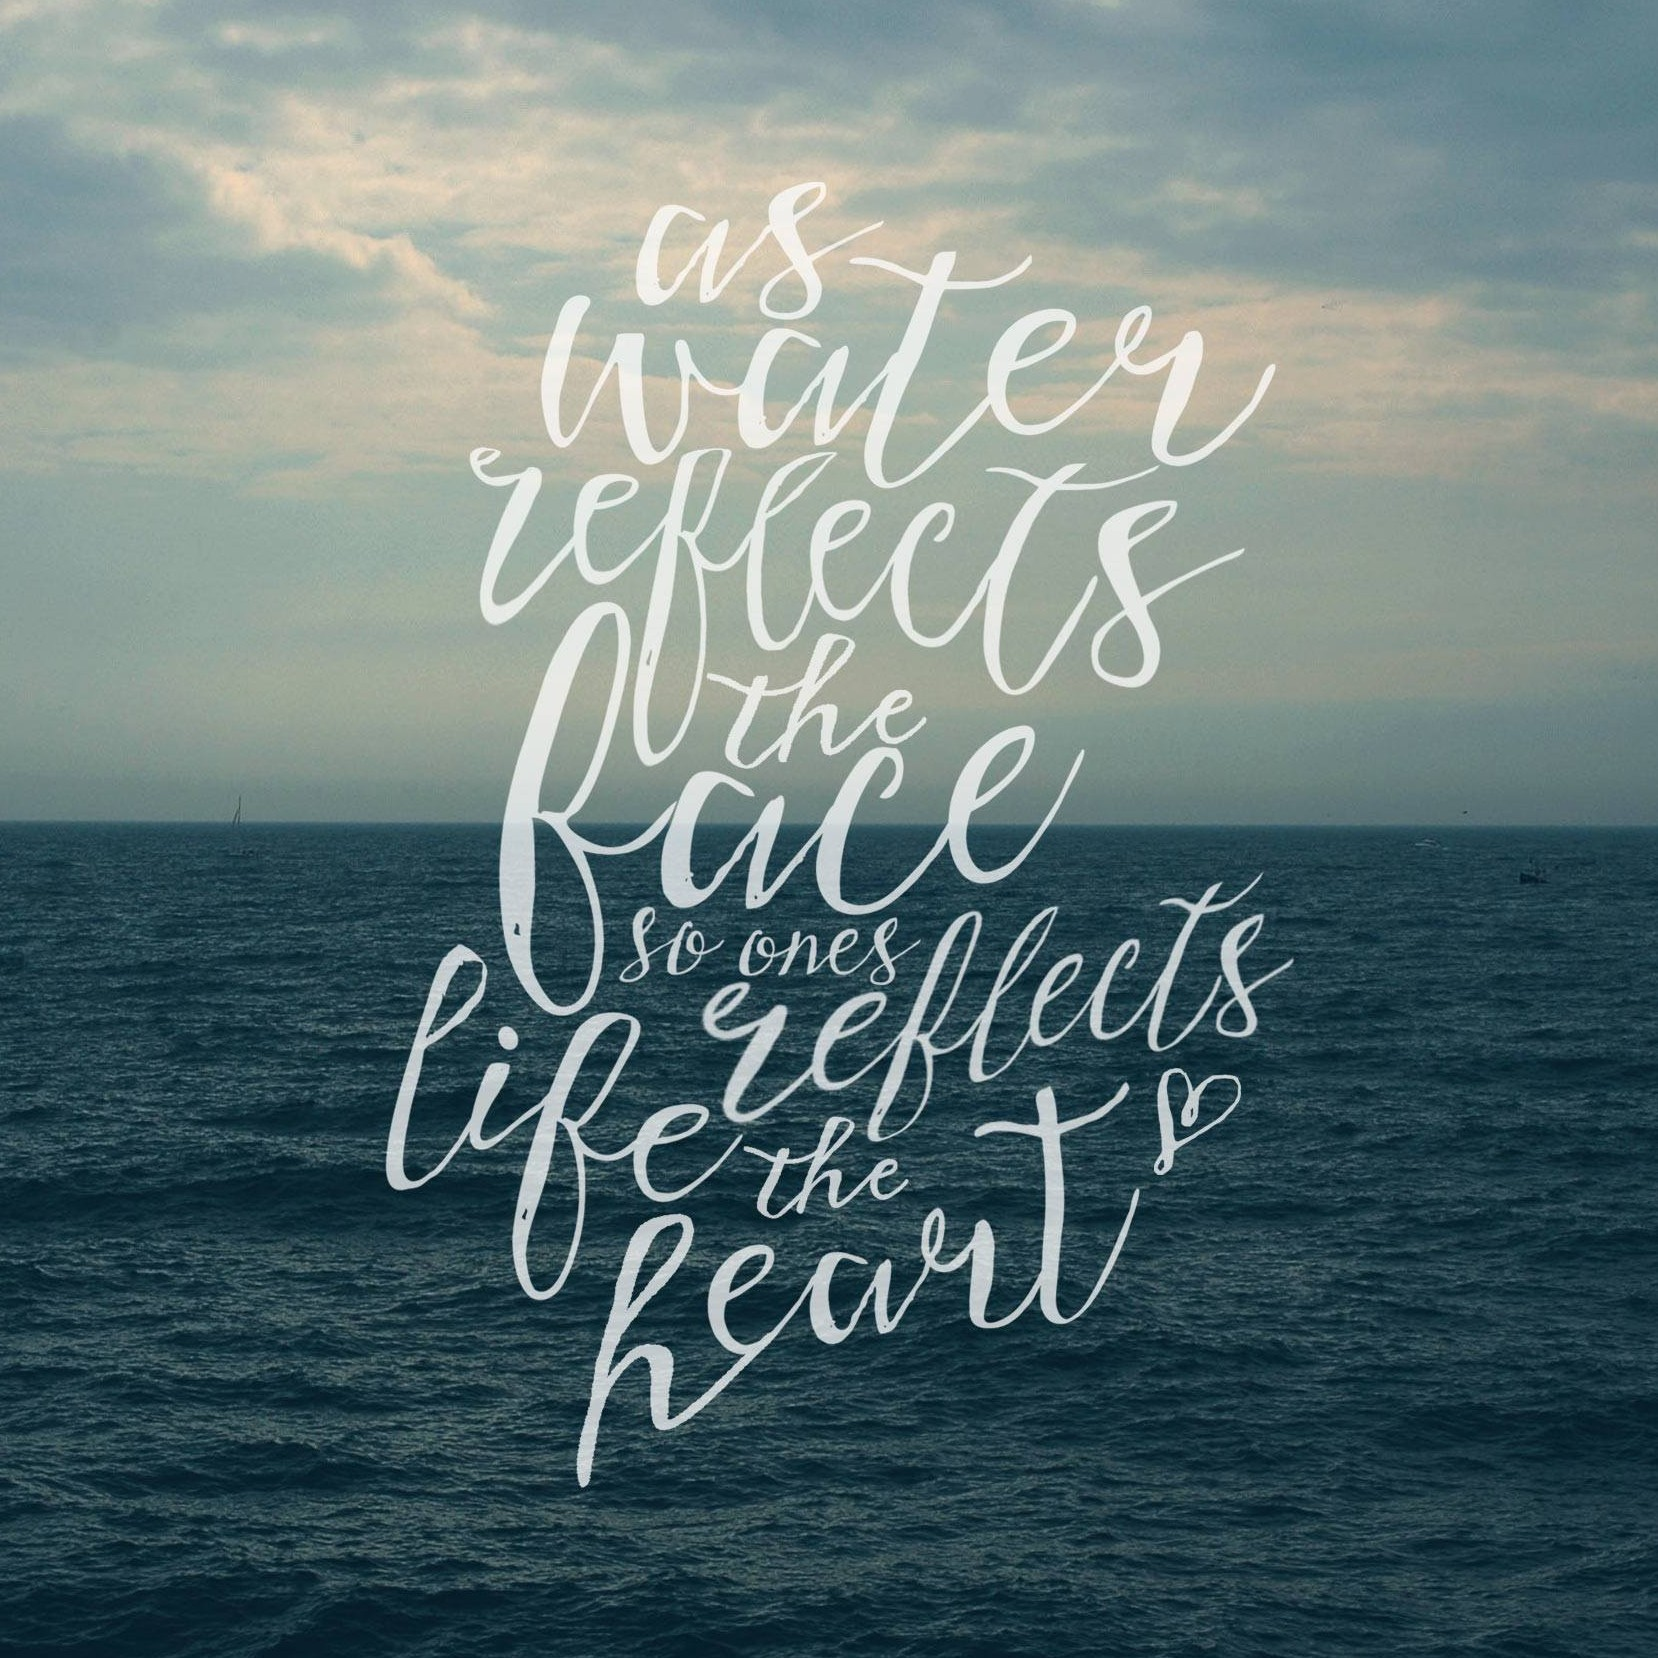 One's Life Reflects the Heart